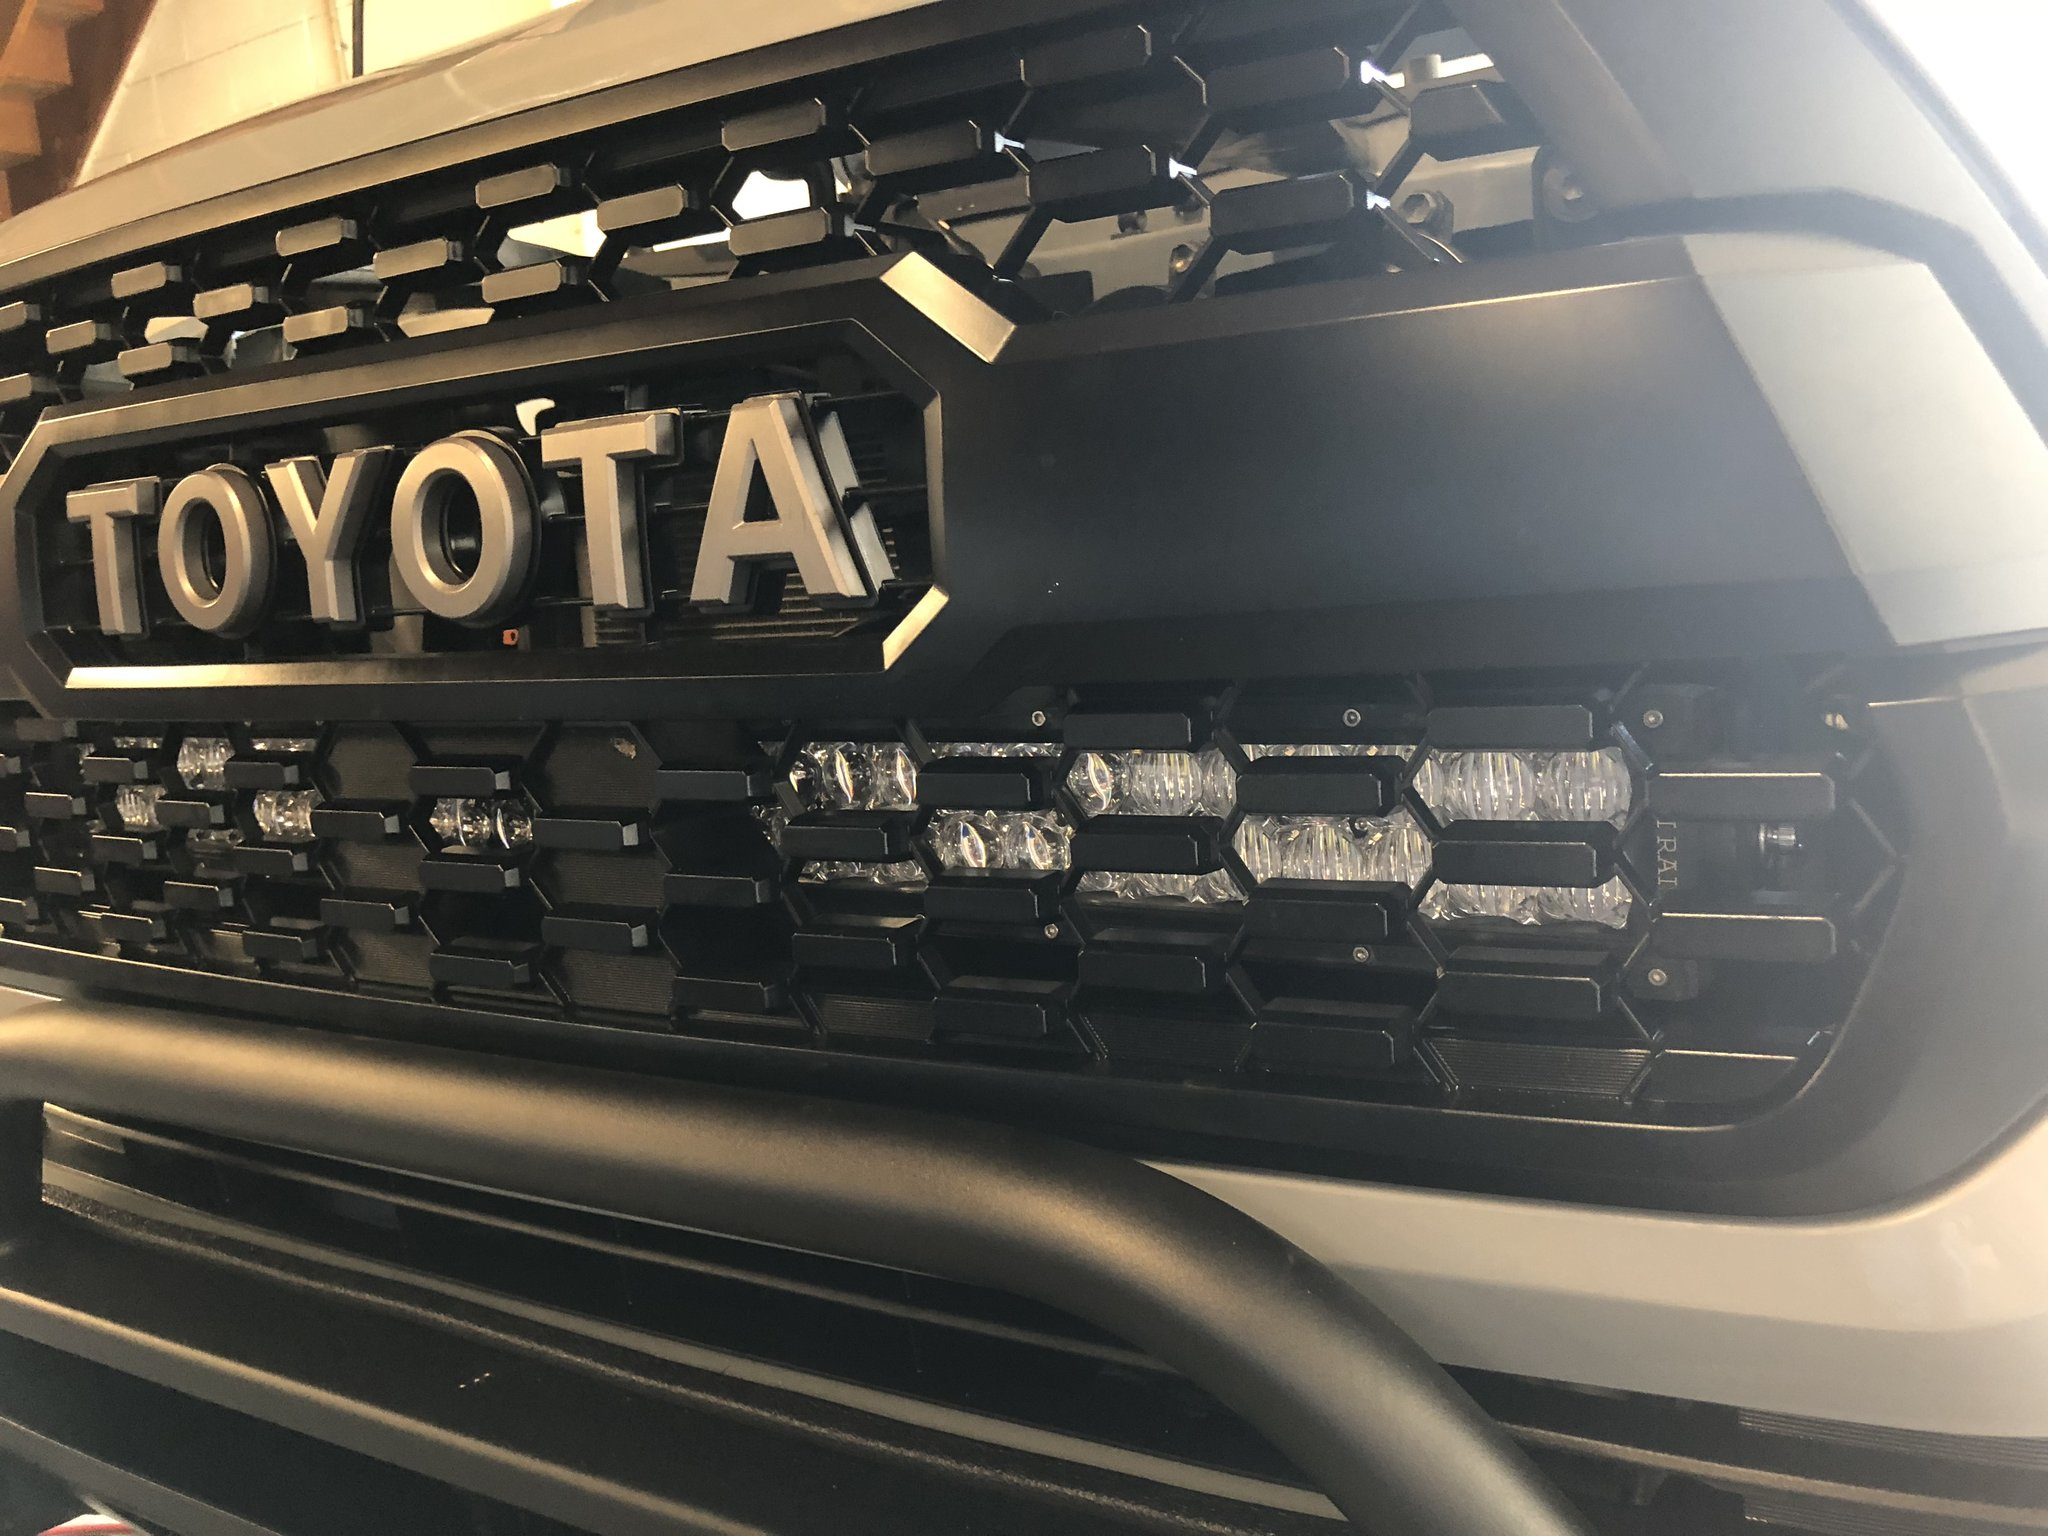 Cali Raised Tacoma 32 in. Upper Grille LED Light Bar Combo - Ships Free